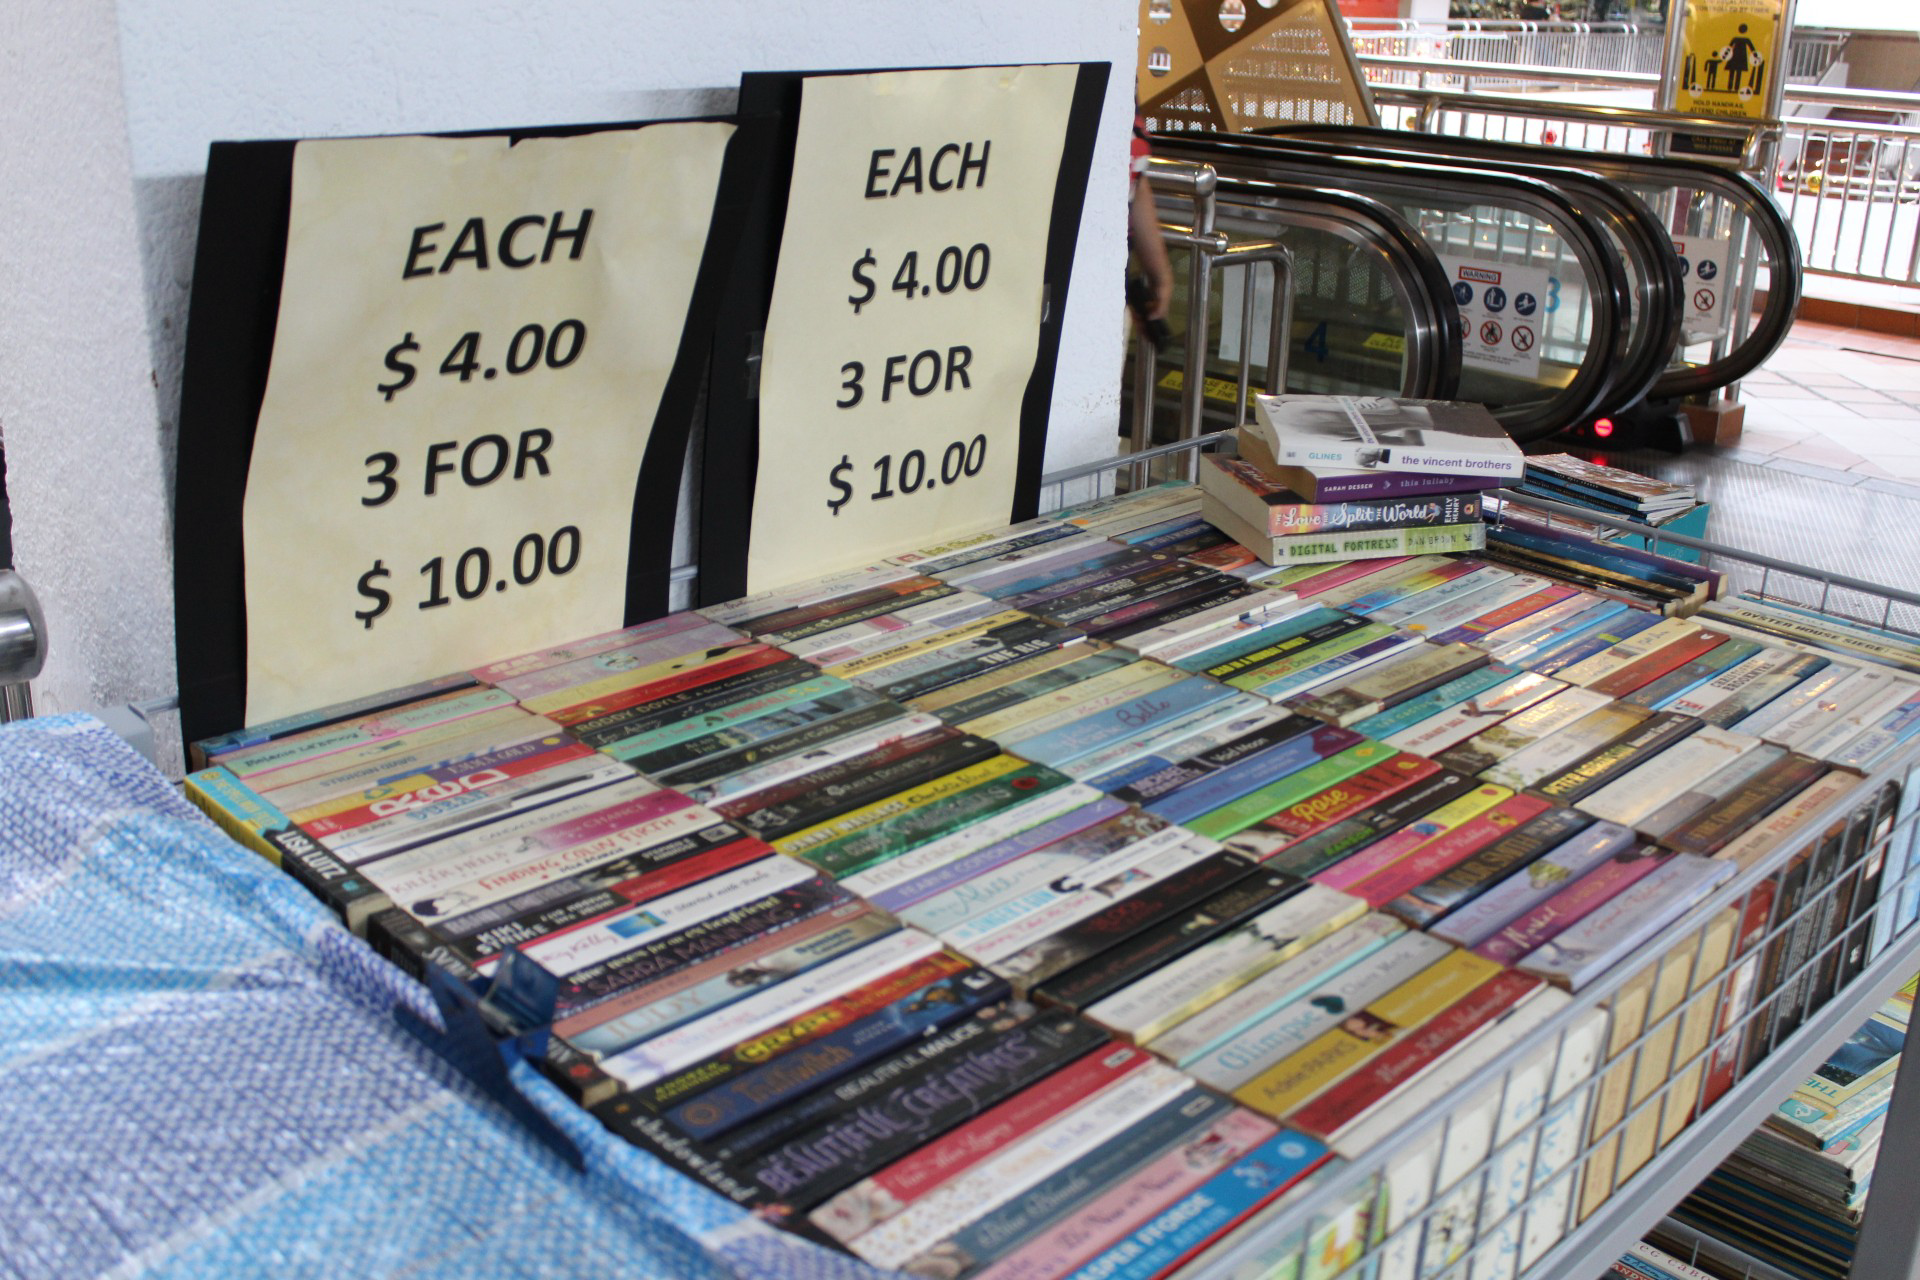 Discounts on books - 1 for $4, 3 for $10